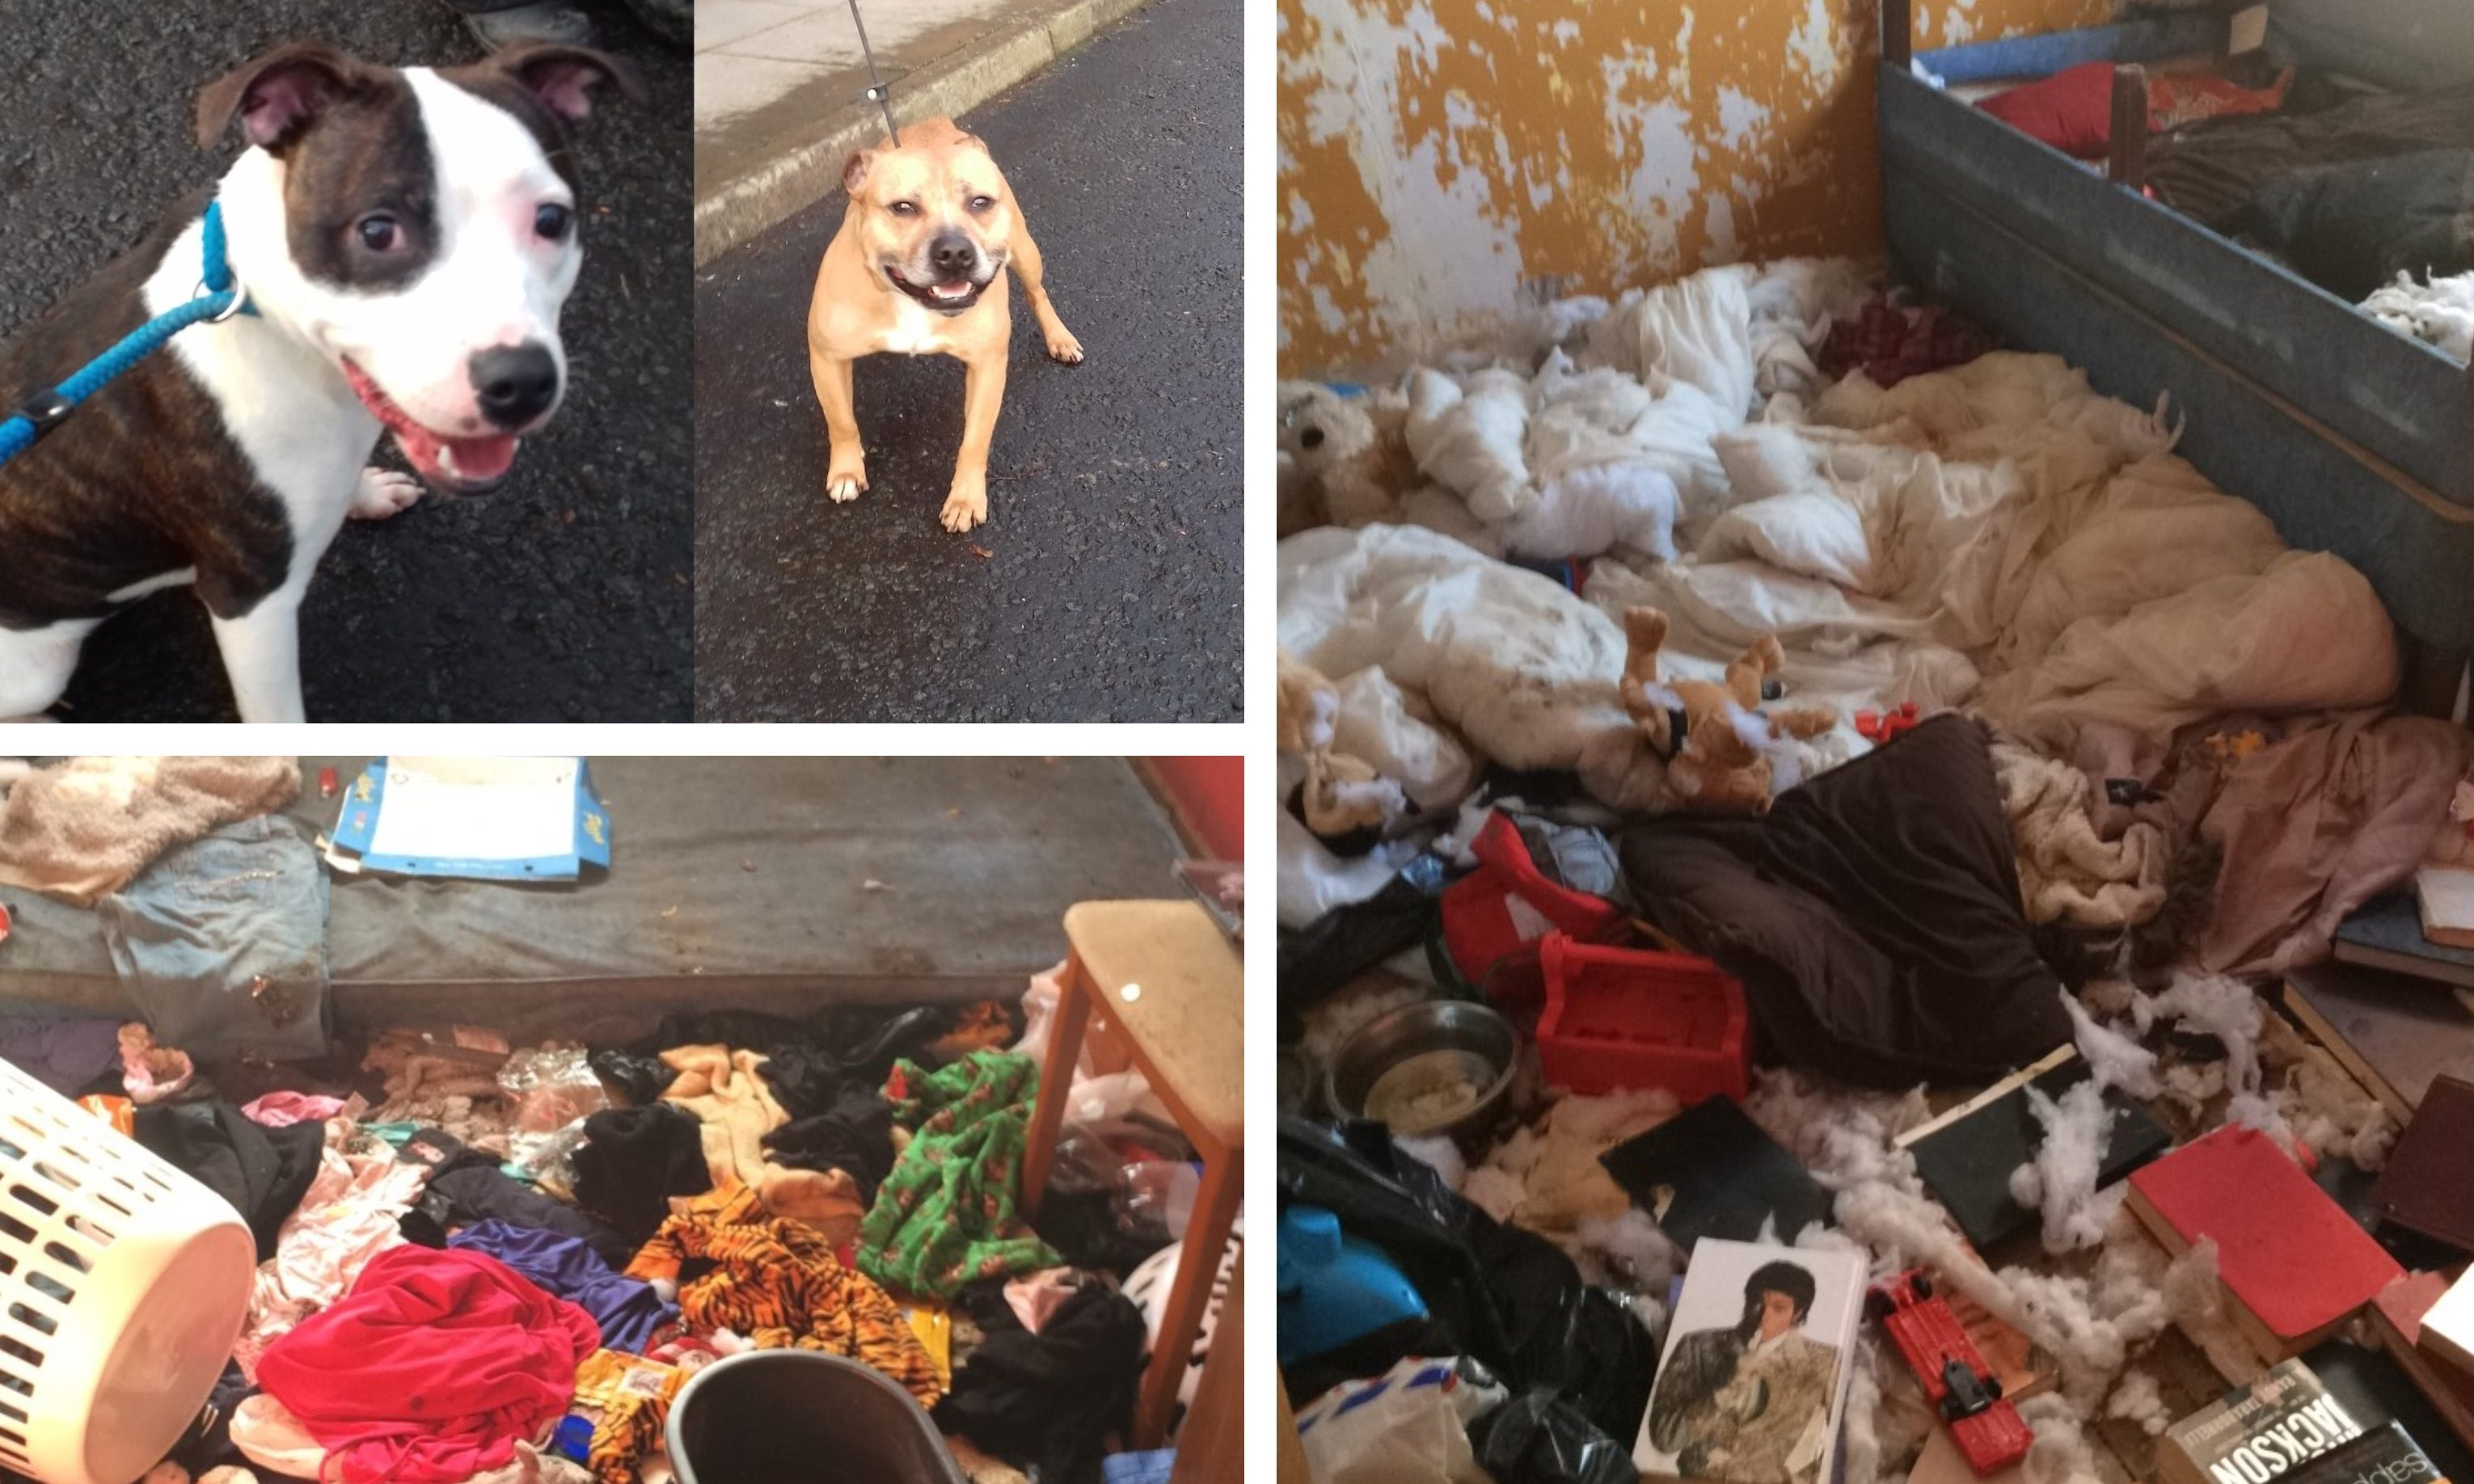 Mali and Codi (top left) and the conditions they were exposed to at the property.